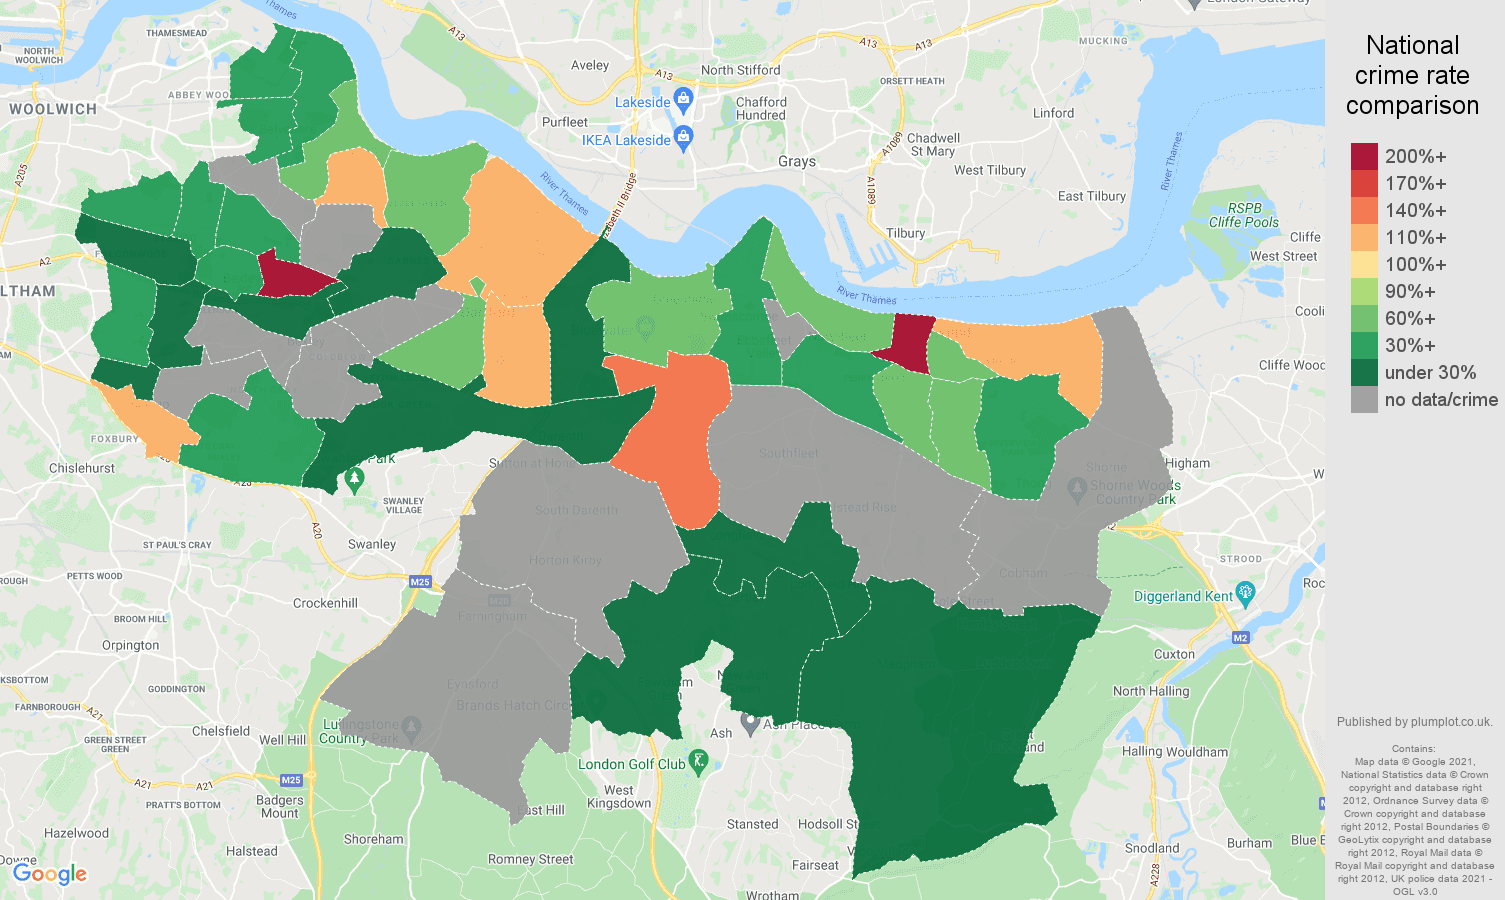 Dartford theft from the person crime rate comparison map